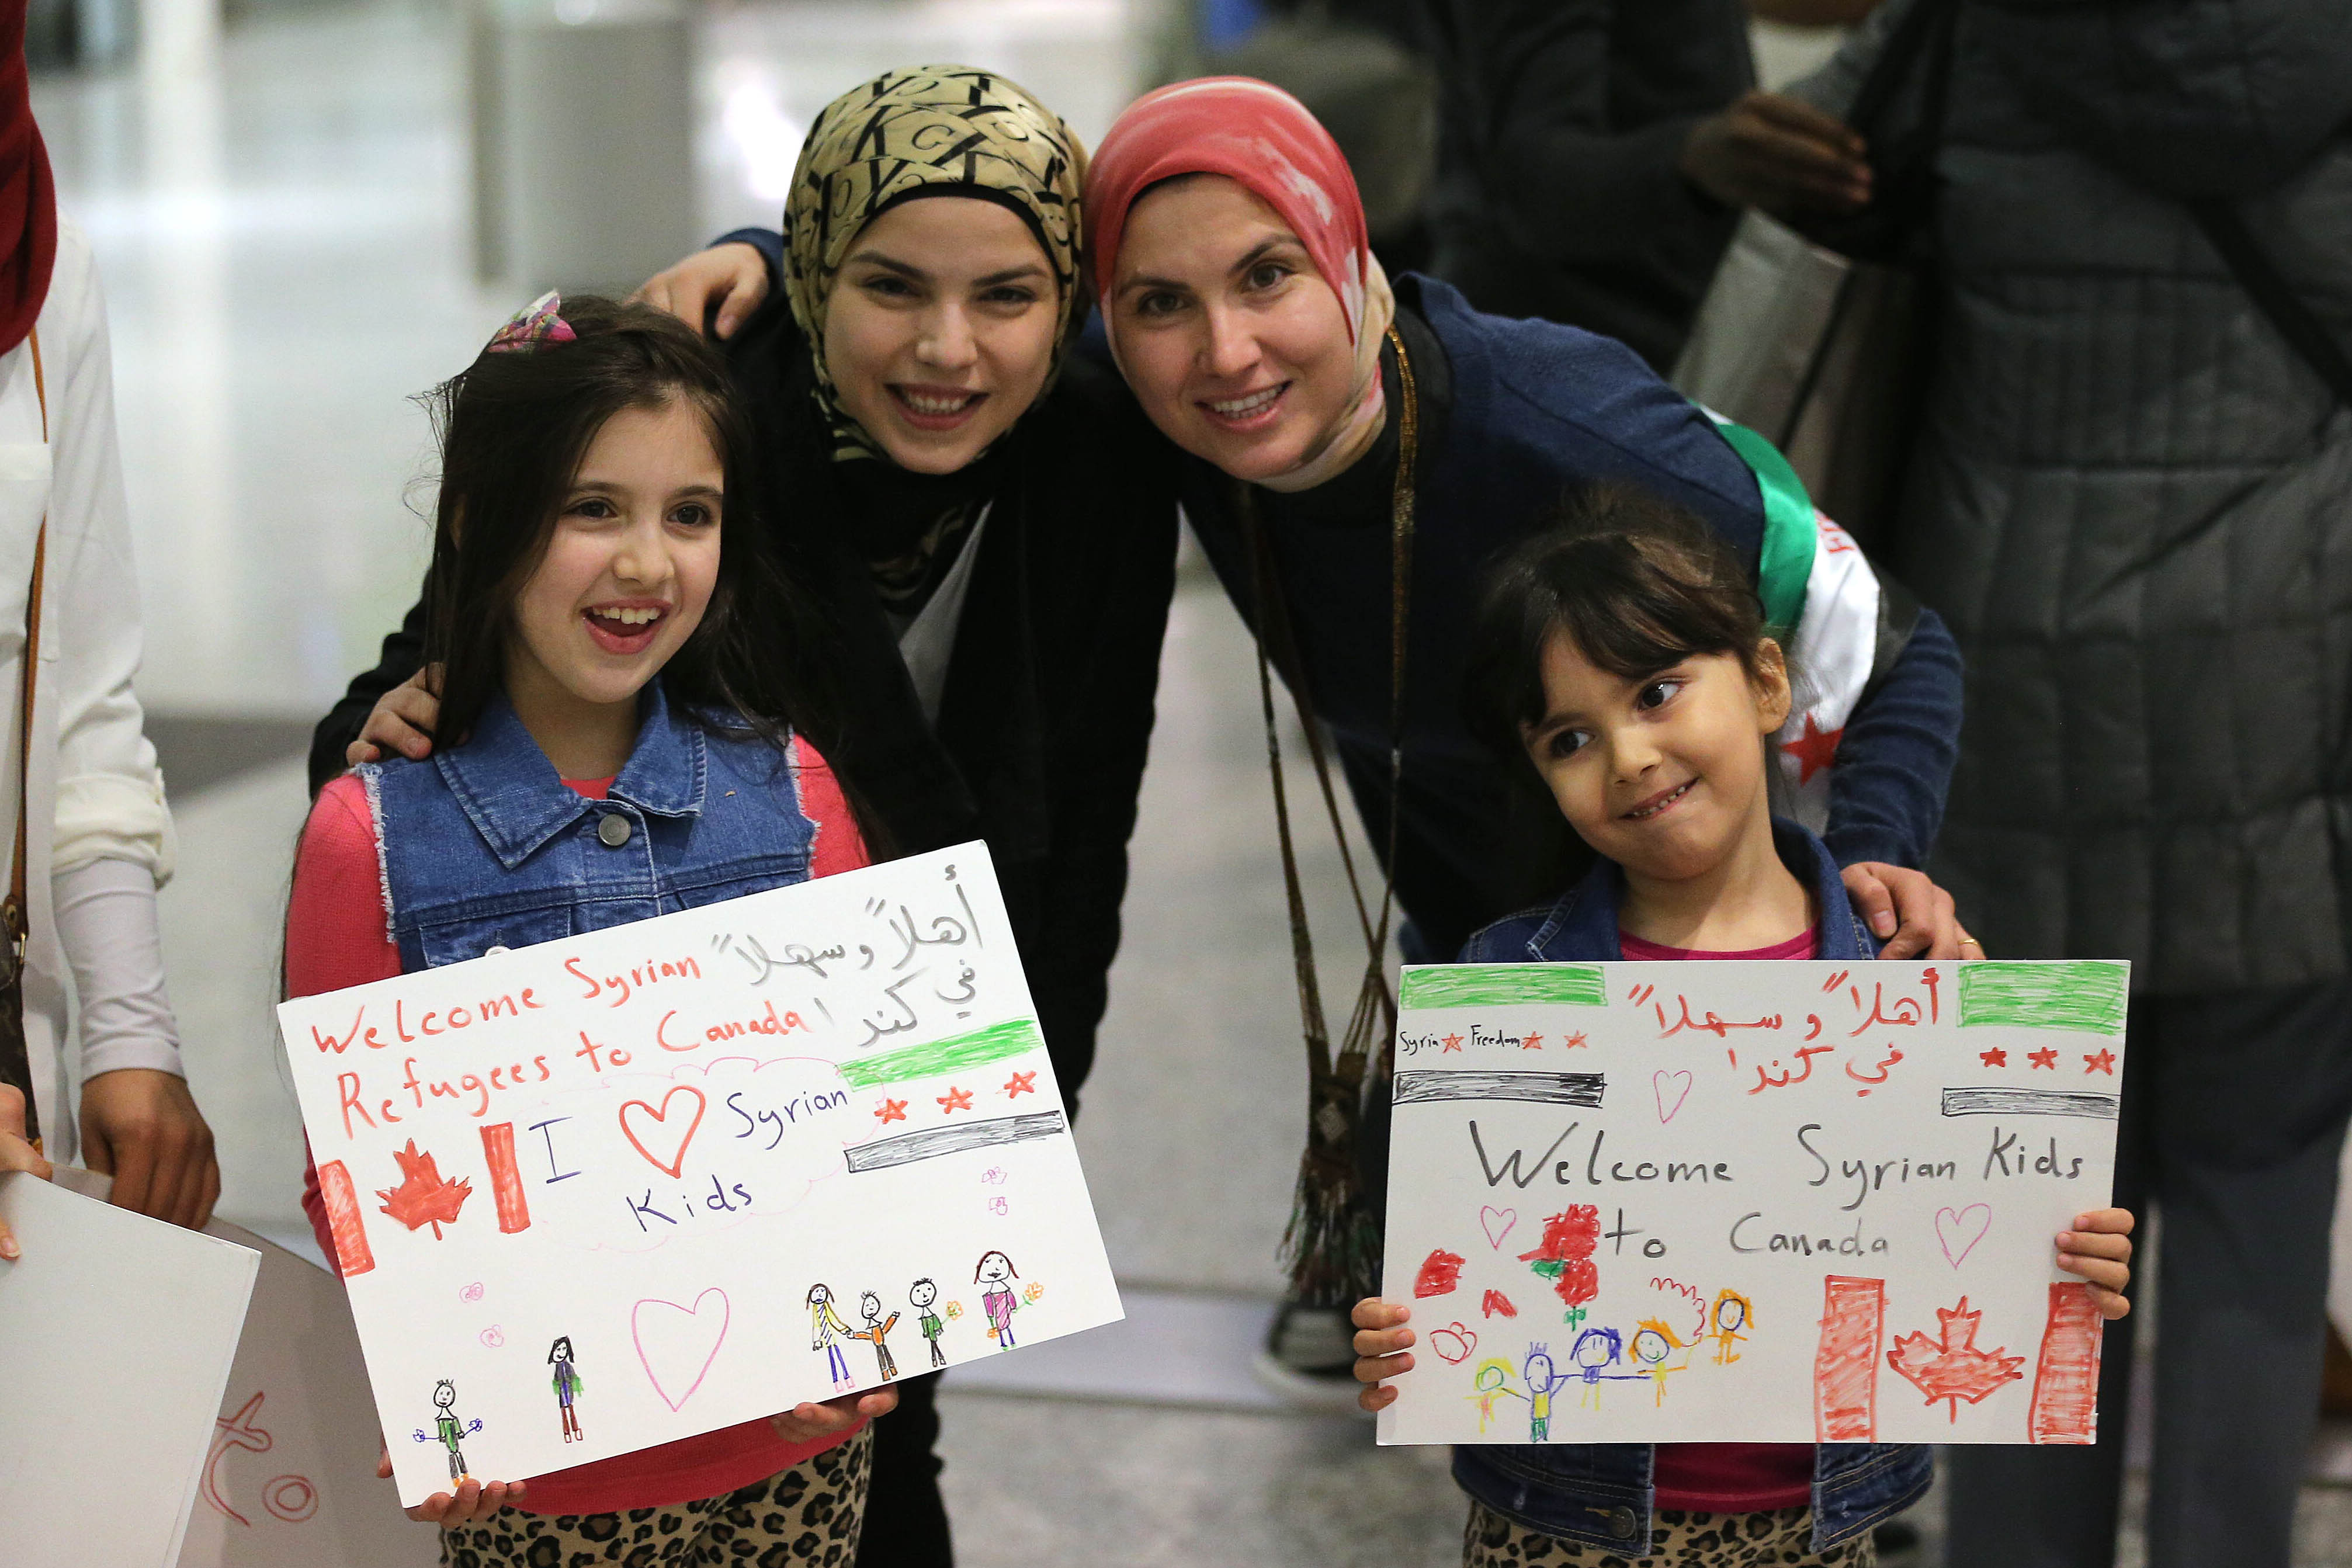 Maryam and Nore Kasmeih wait for Syrian refugees at the airport on Dec. 10, 2015. Their mother came to Canada 15 years ago and their family that was in Syria fled to Turkey.